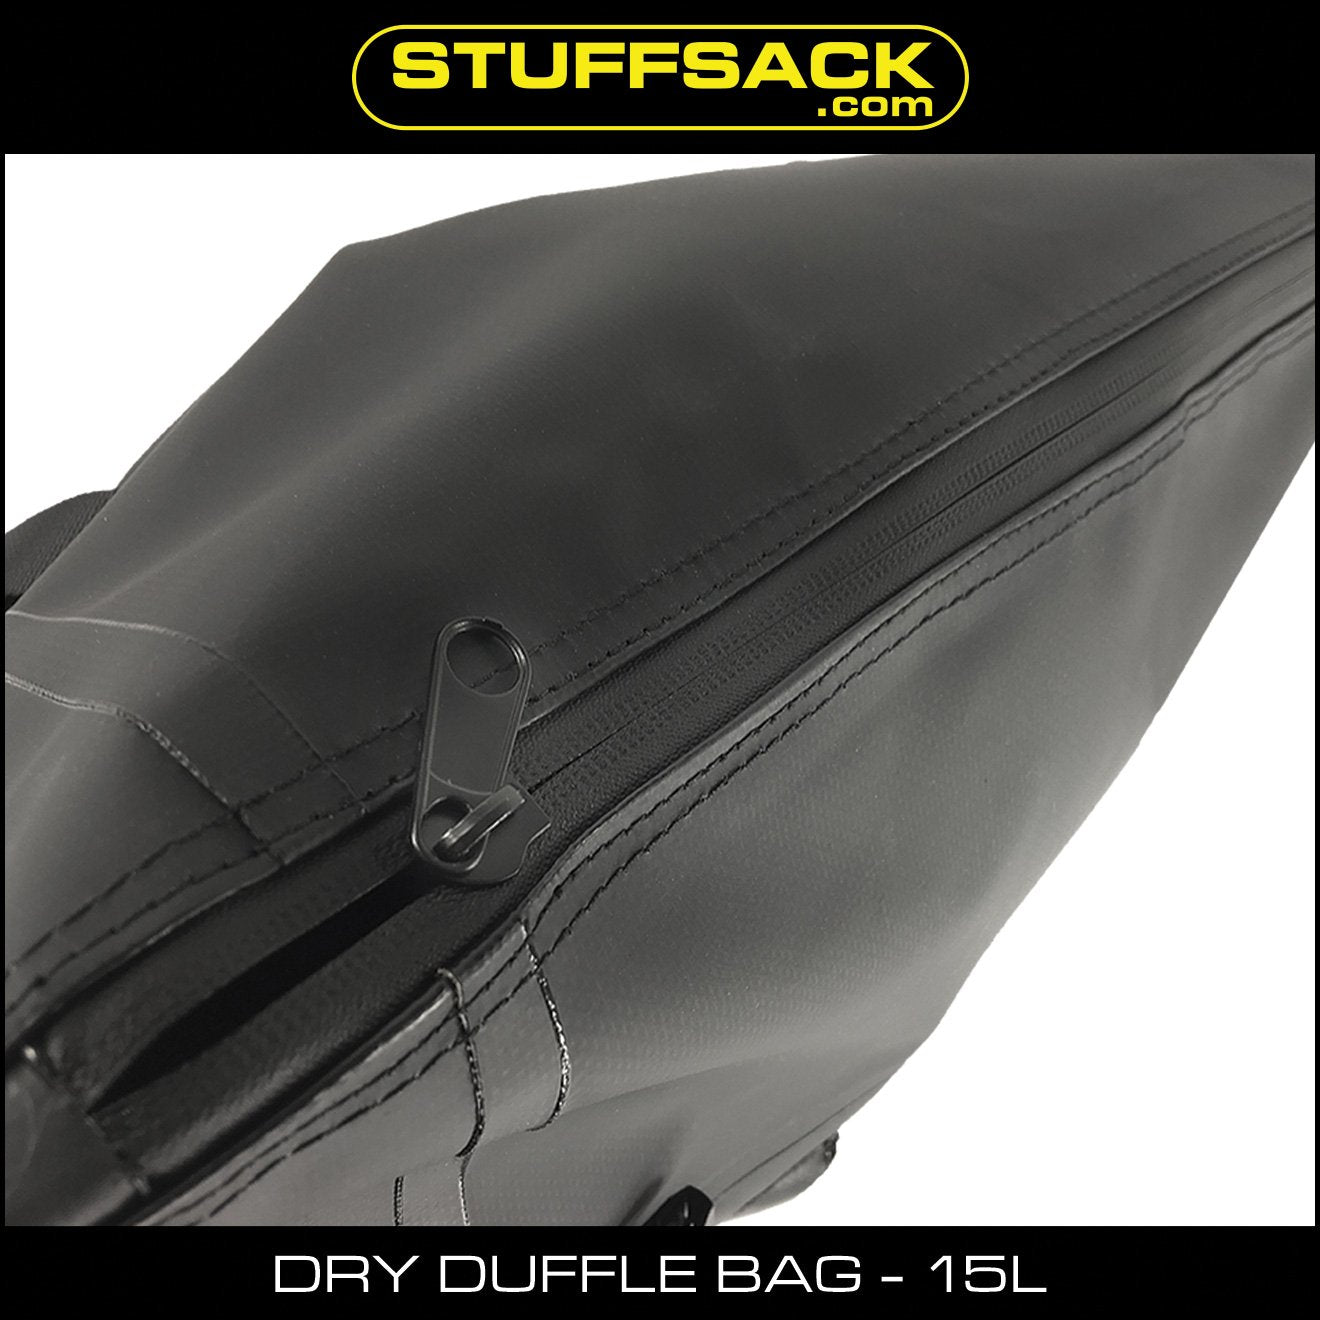 Stuffsack.com Dry Duffle Bag - 15L Black